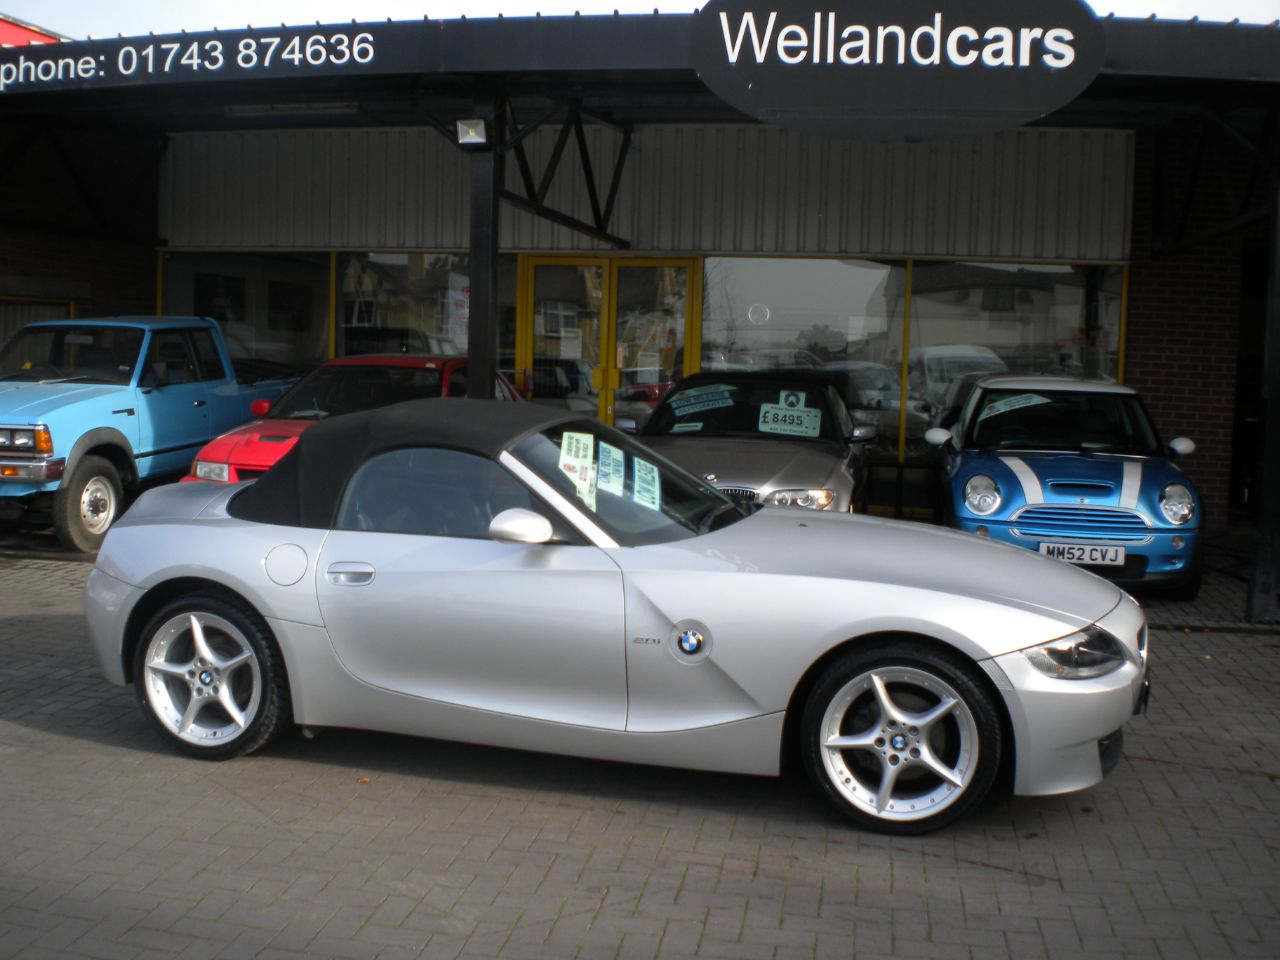 BMW Z4 2.0i SE 2dr 6 Speed Manual,F/S/H,Leather,Low Miles # 15 MONTH WARRANTY INCLUDED Convertible Petrol Silver at Welland Cars Shrewsbury